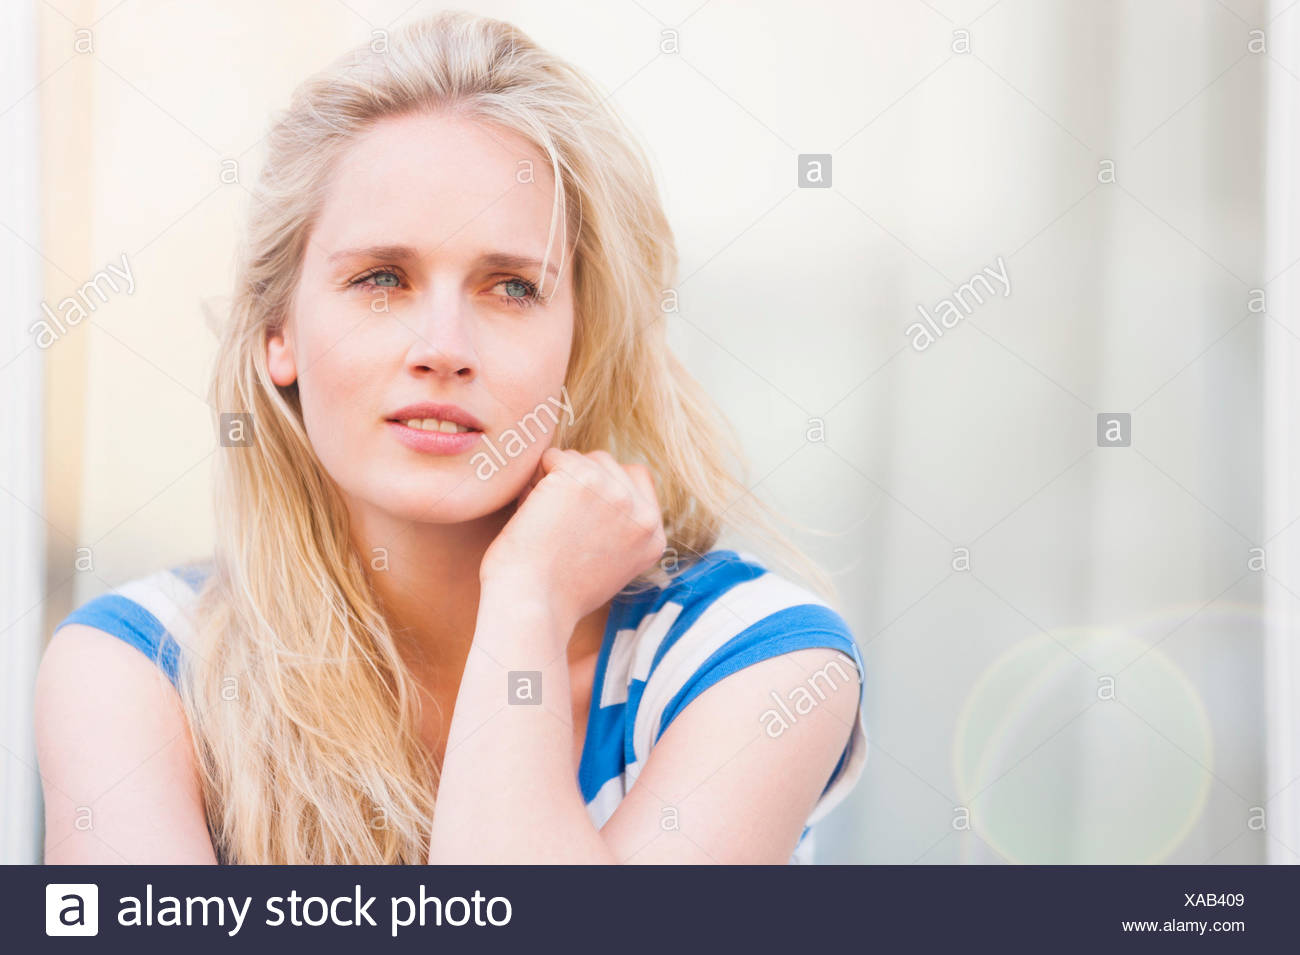 Portrait of young woman with pensive expression - Stock Image